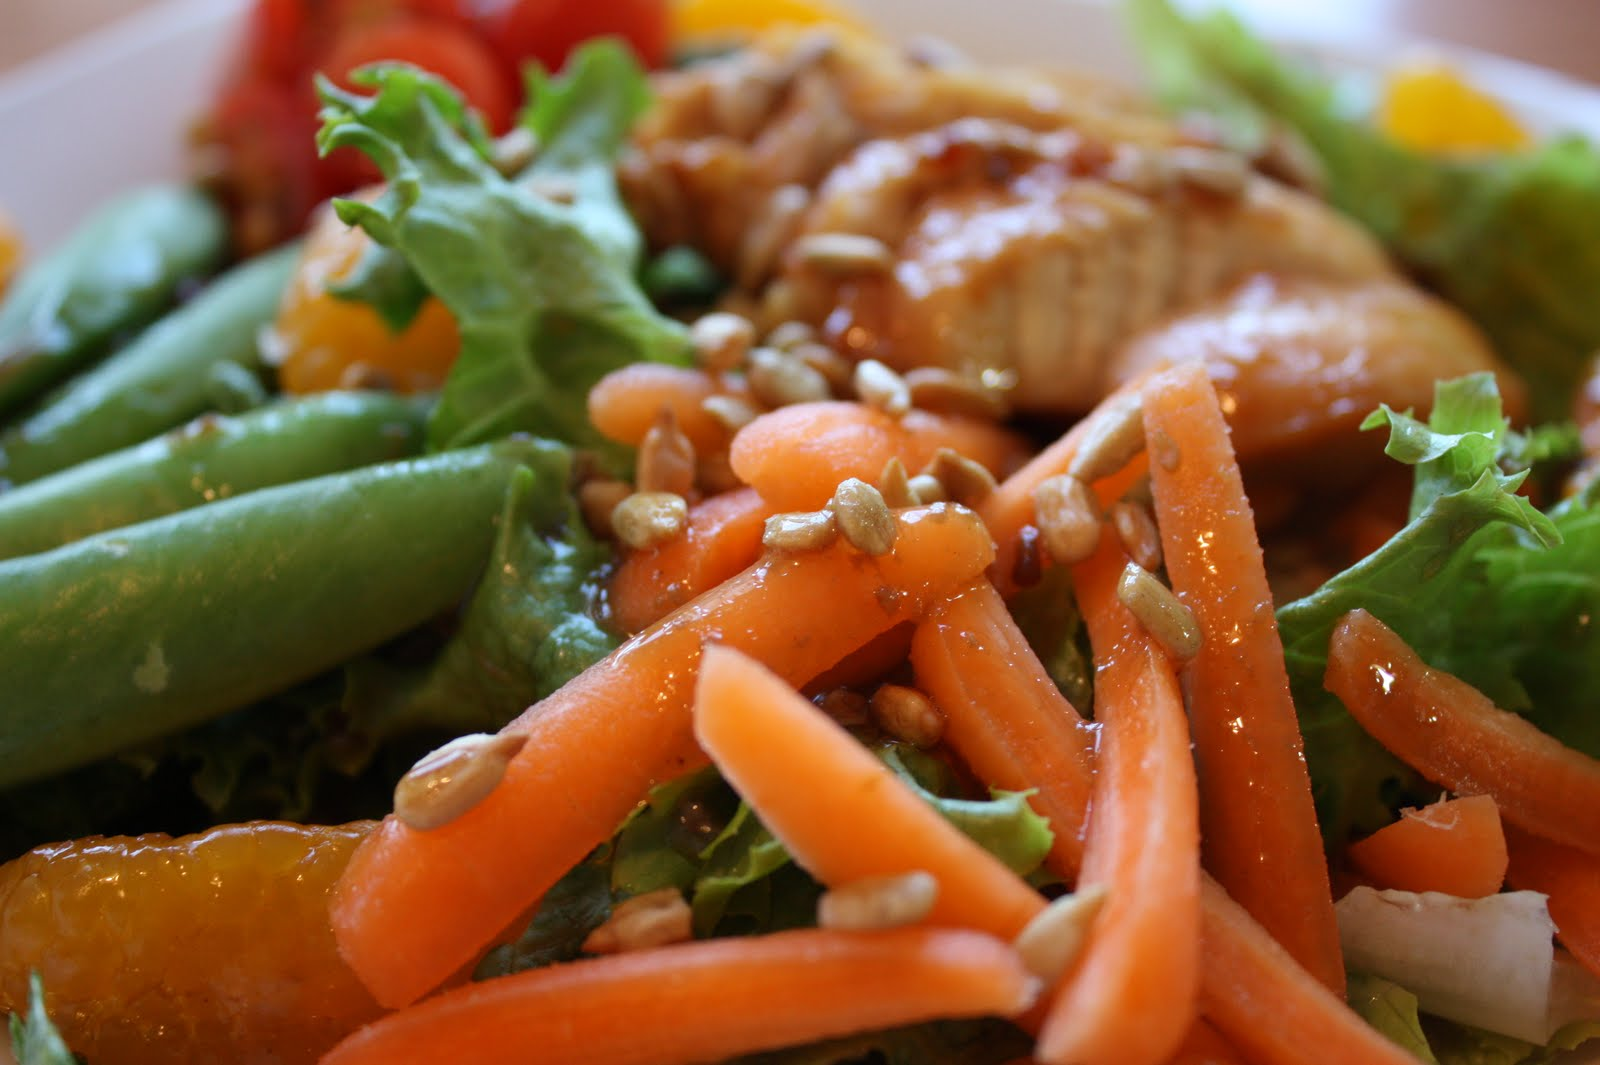 warm, moist chicken, and sweet red bell peppers (this time I had ...